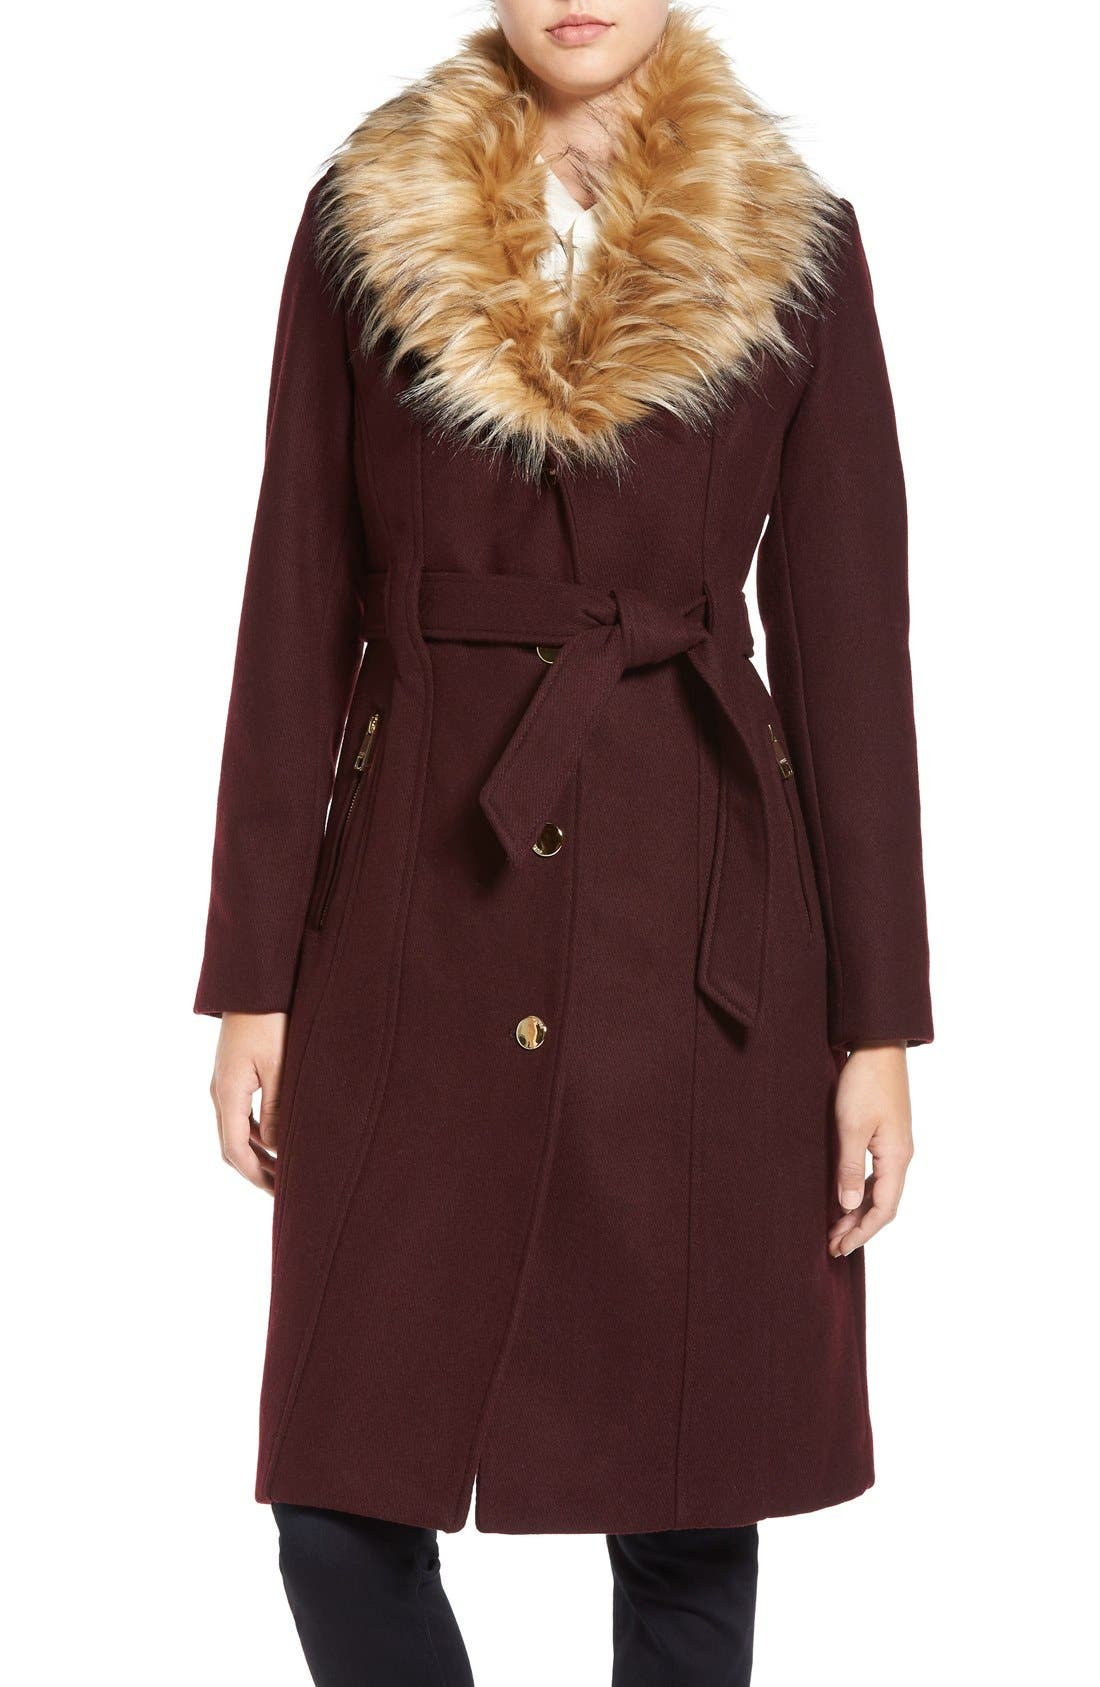 GUESS Trench Coat with Faux Fur Trim, Main, color, 240